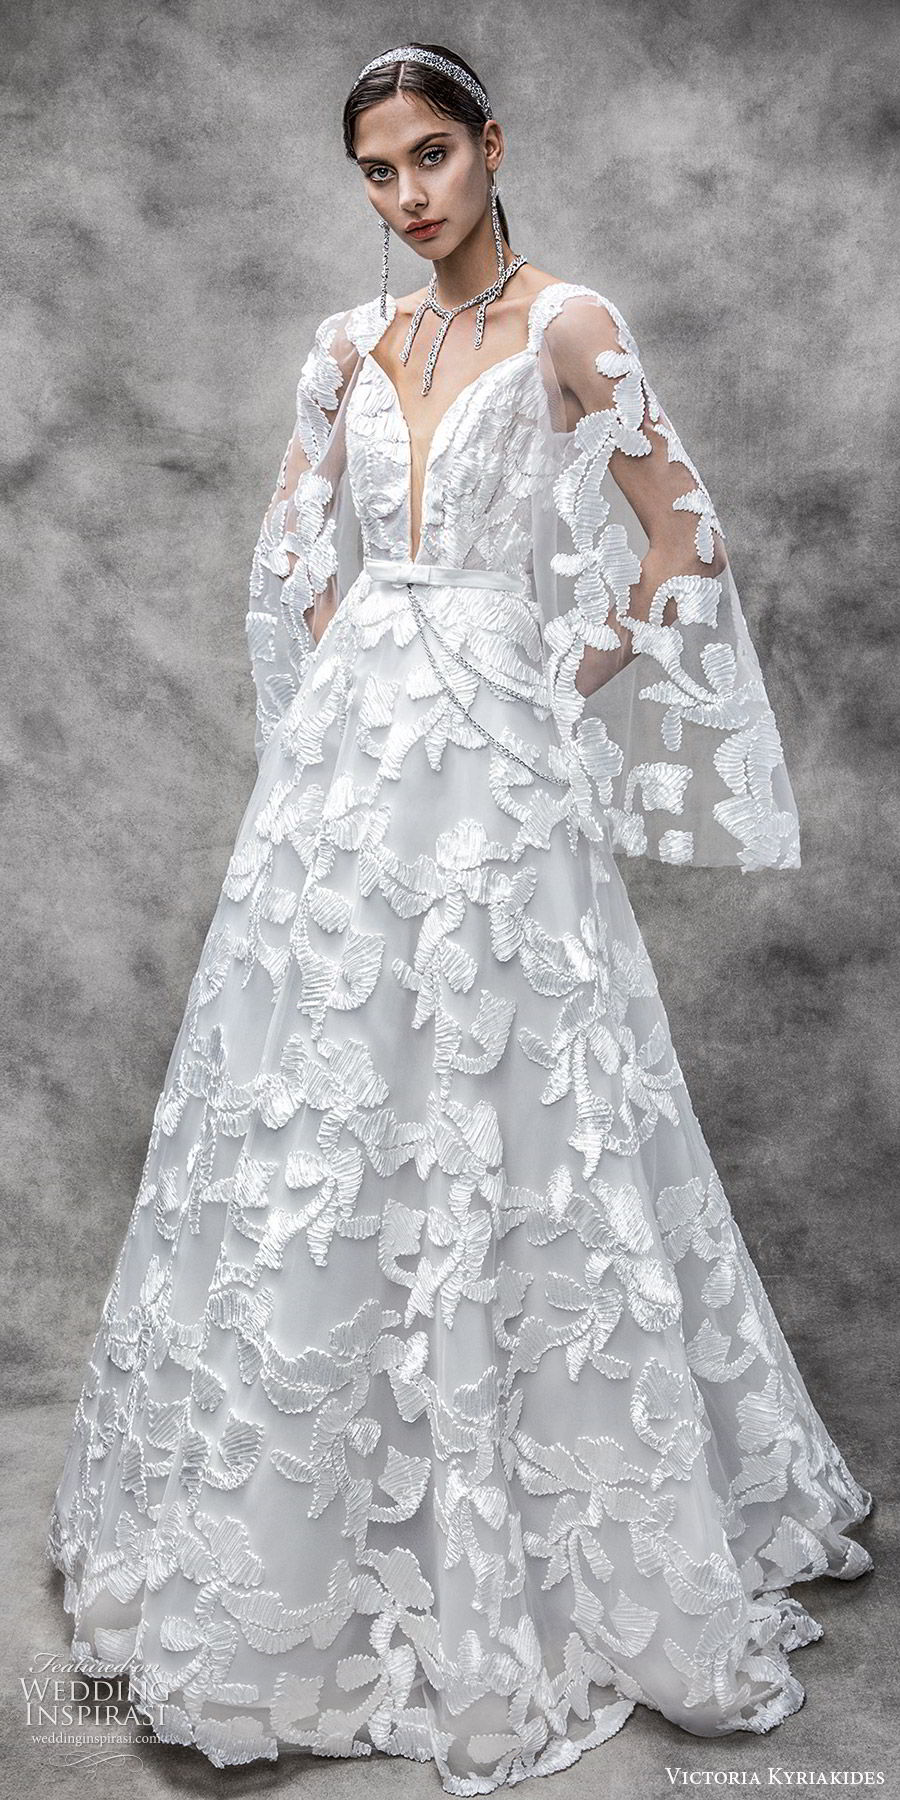 victoria kyriakides spring 2020 bridal sheer pagoda sleeves split sweetheart neckline fully embellished a line ball gown wedding dress (9) modern romantic mv